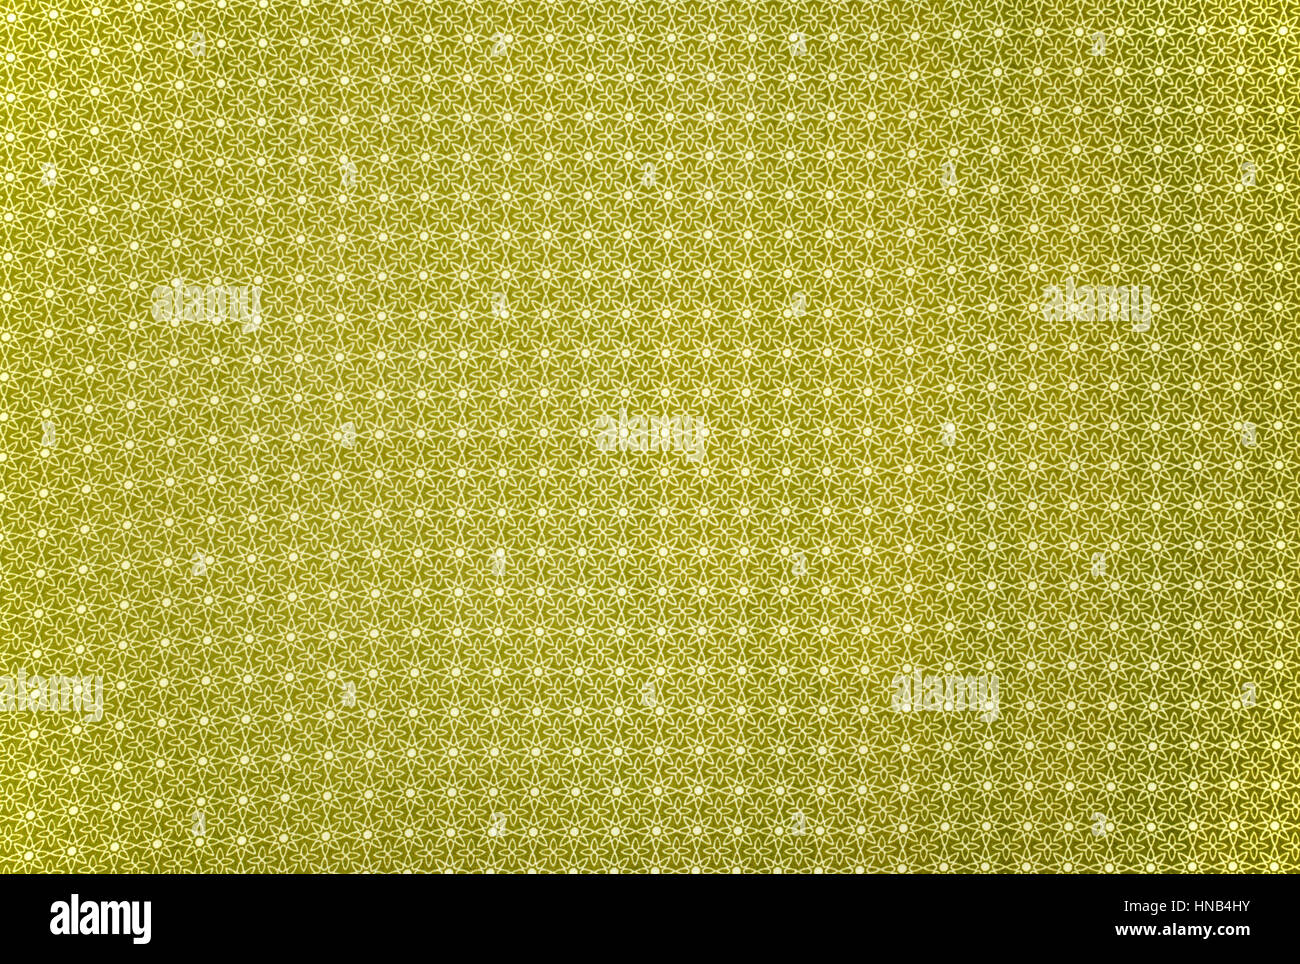 Olive Green Repeated Linear Floral Pattern Cloth Background Patterned - Stock Image